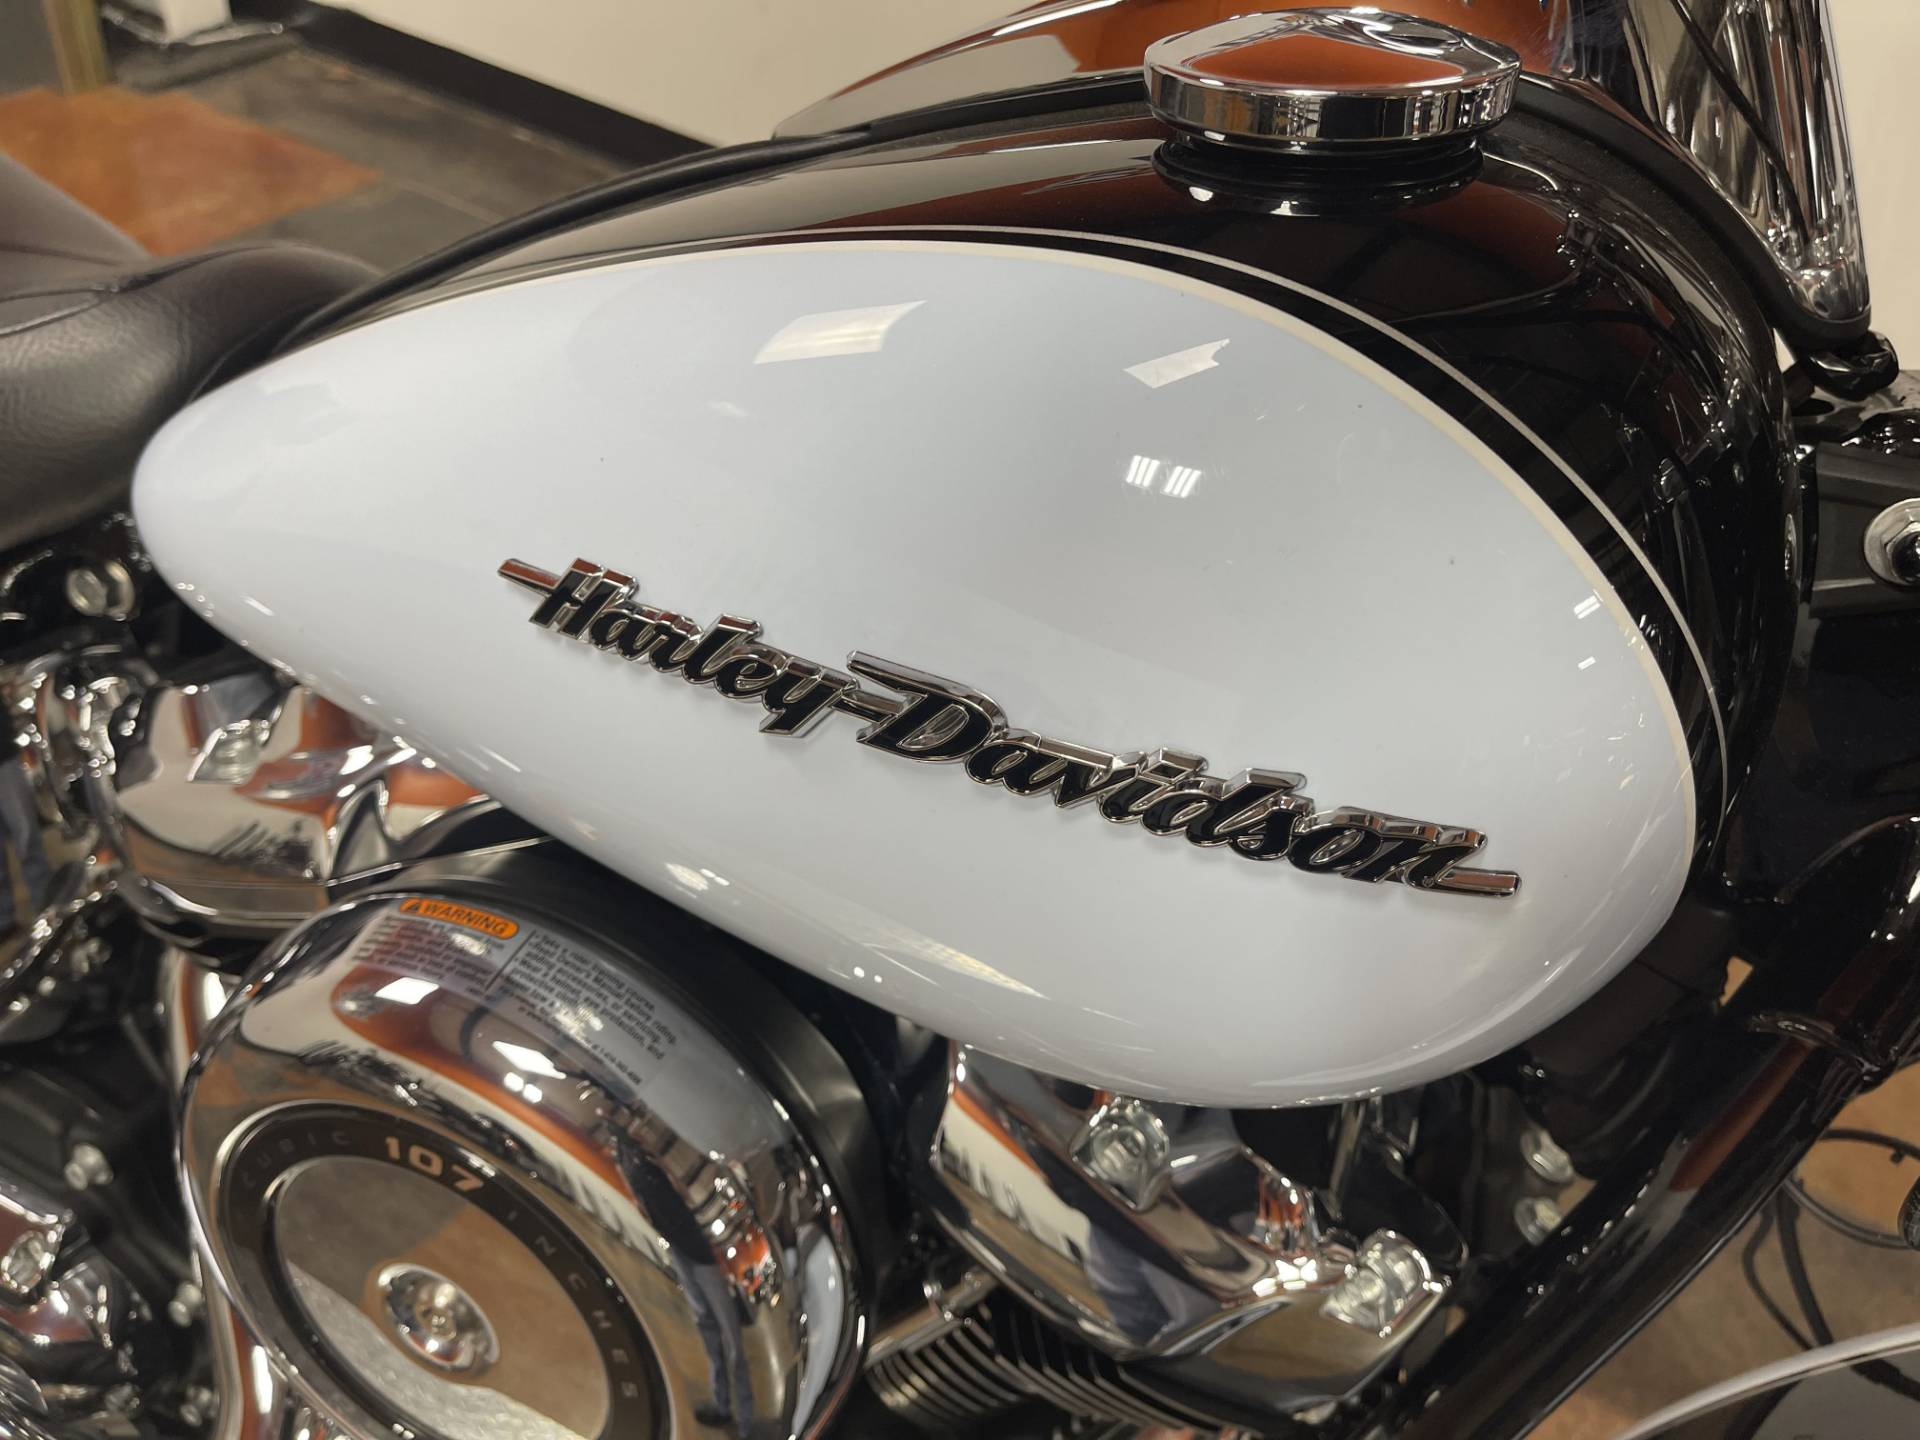 2018 Harley-Davidson Softail® Deluxe 107 in Marion, Illinois - Photo 2